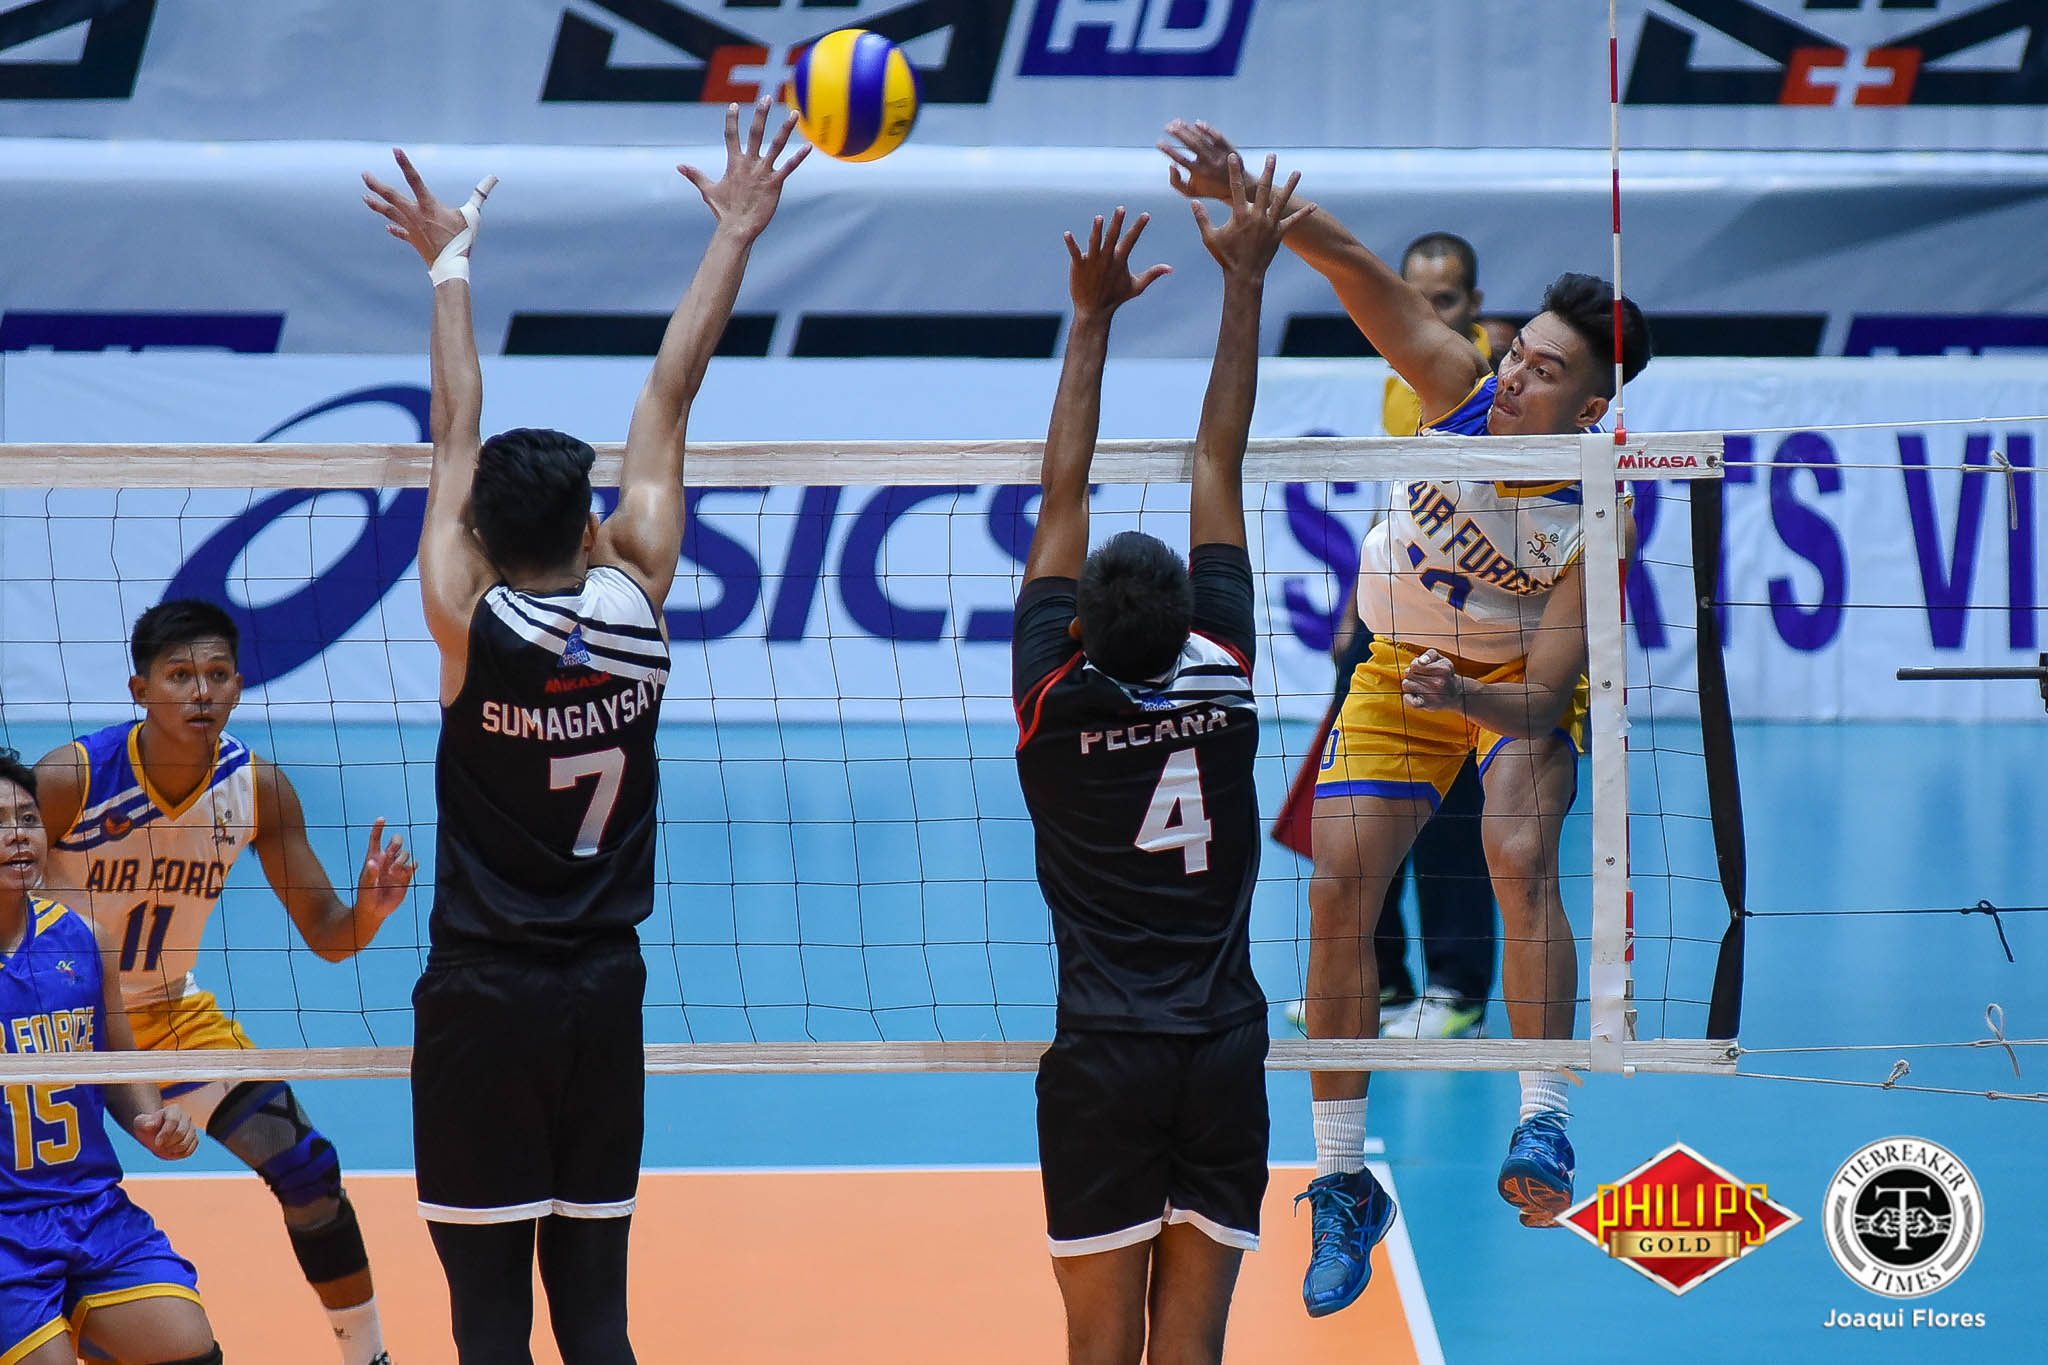 Tiebreaker Times Air Force rolls to first QF win, avenges shock loss to Army News PVL Volleyball  Rico De Guzman Rhovyl Verayo PJ Rojas Pitrus De Ocampo Juvie Mangaring Howard Mojica Benjaylo Labide Army Troopers Air Force Jet Spikers 2018 PVL Season 2018 PVL Men's Reinforced Conference Fauzi Ismail